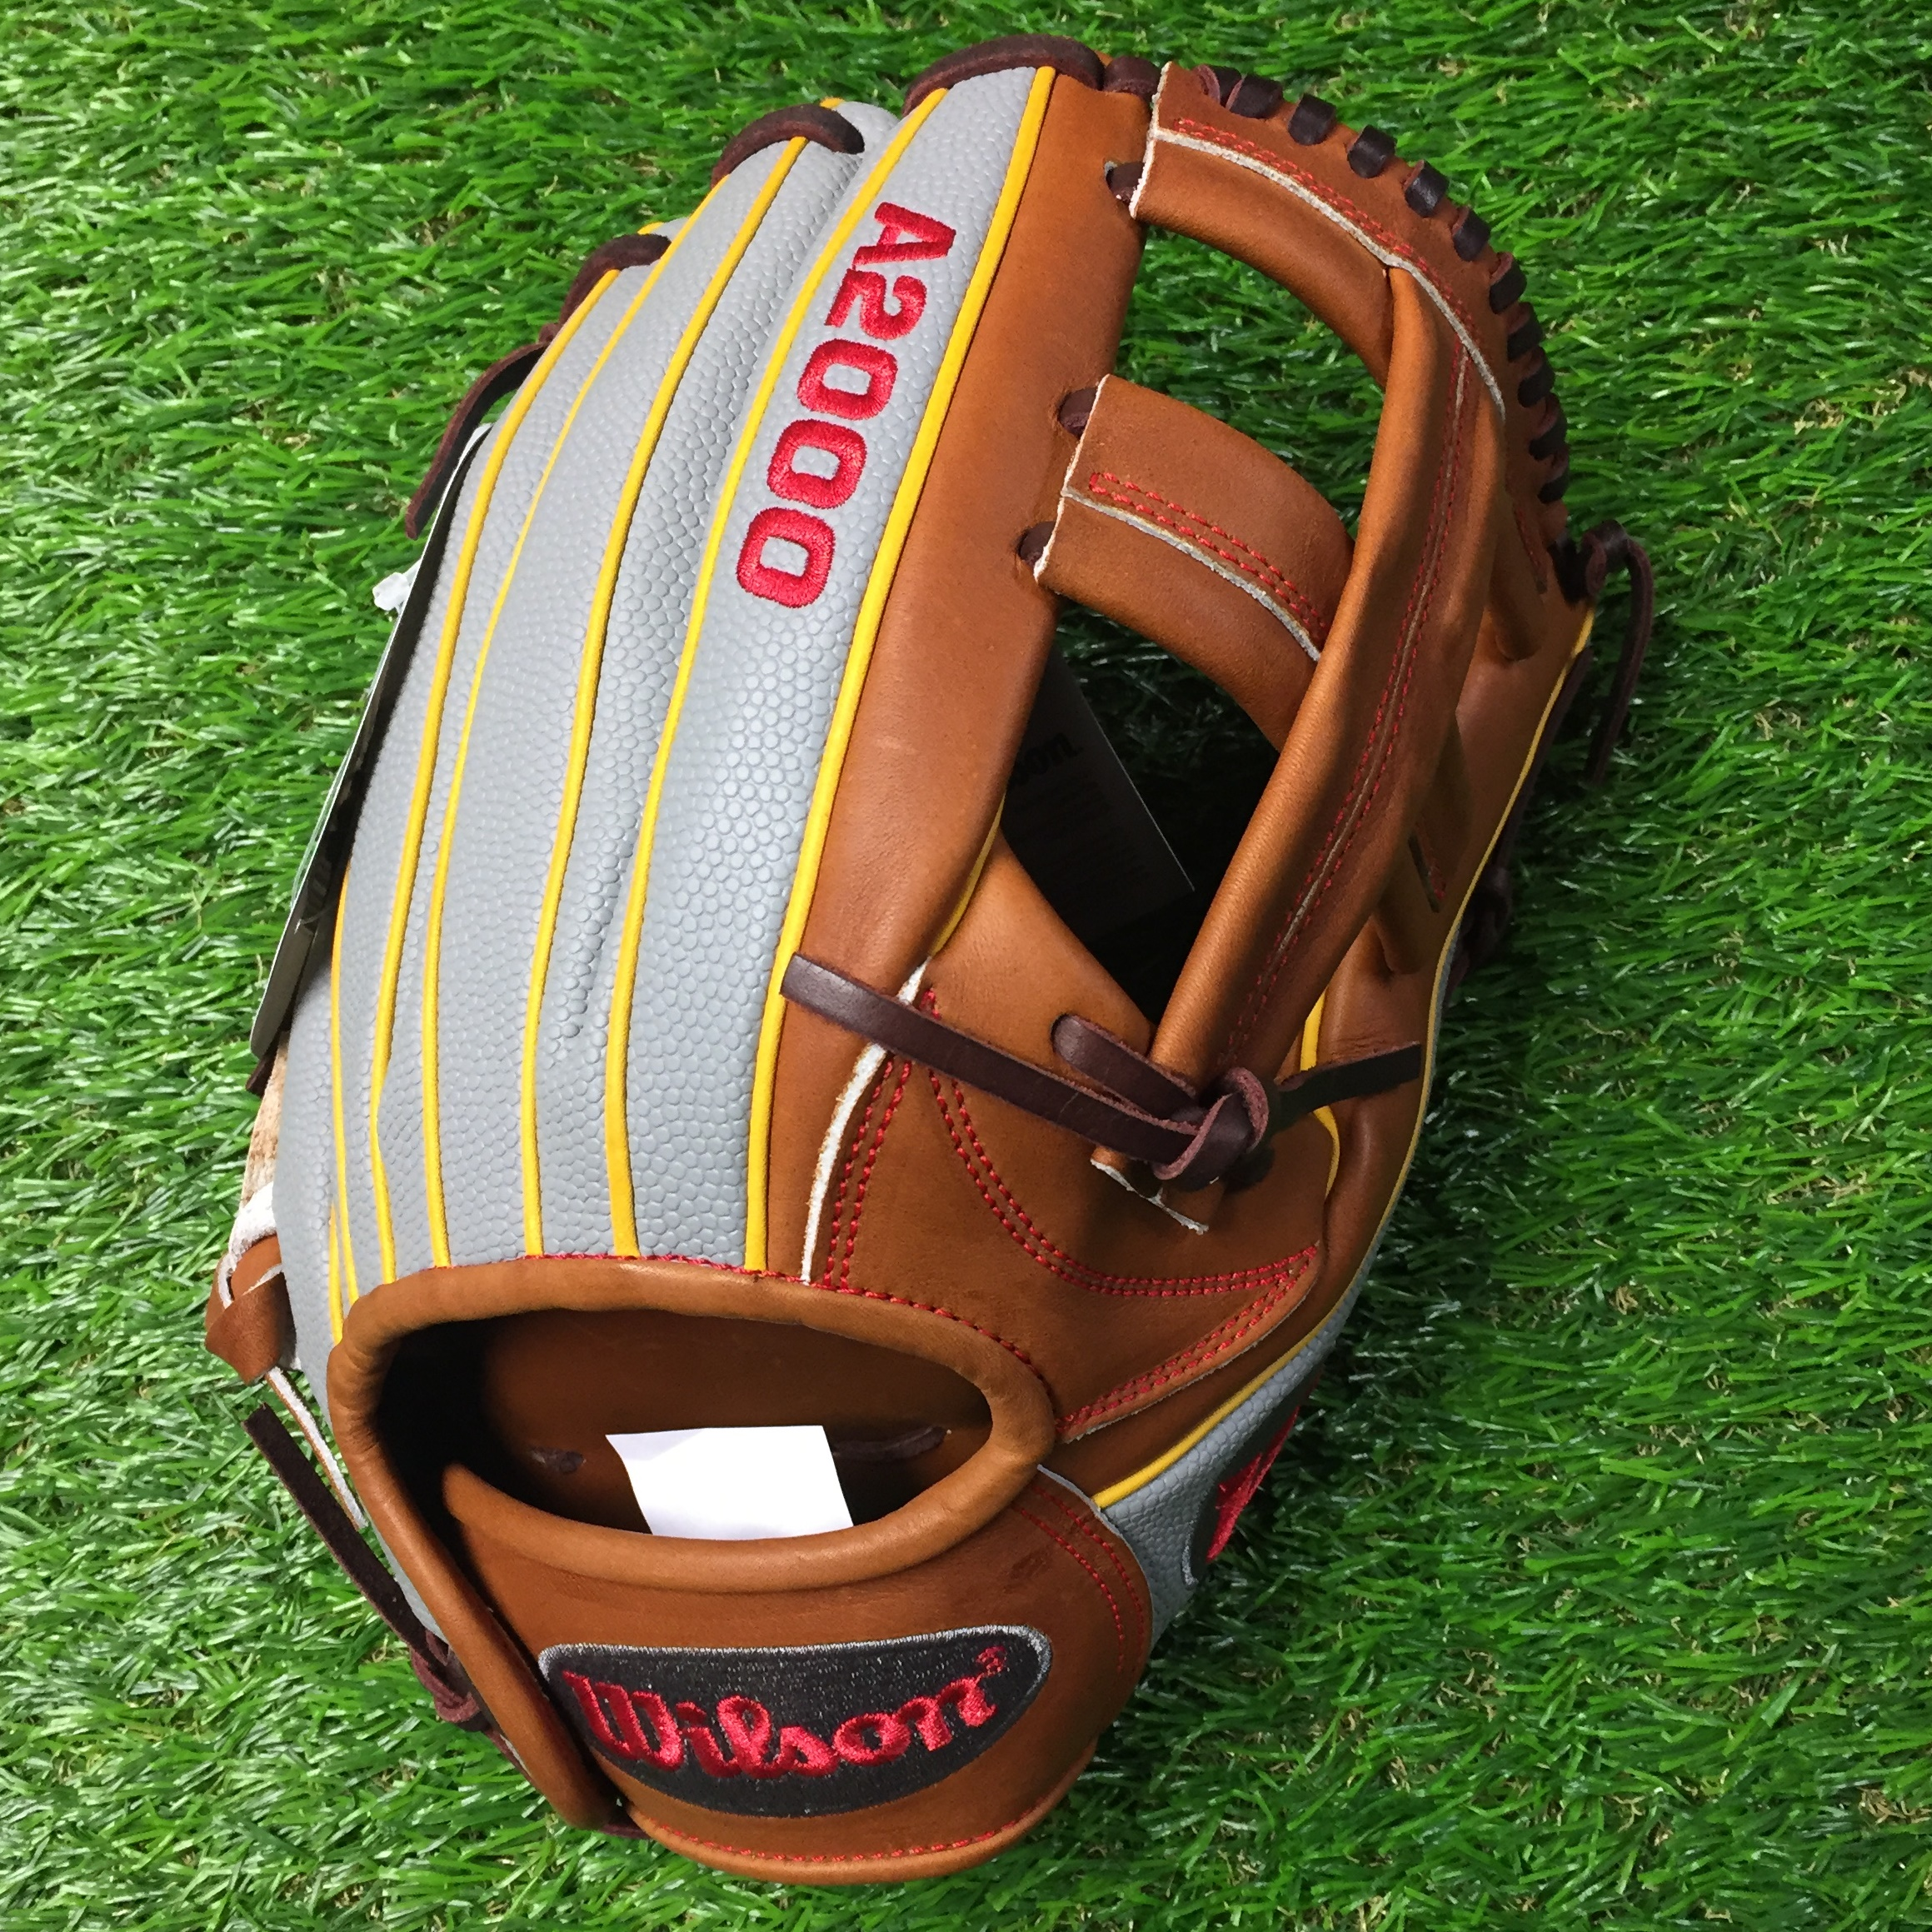 Wilson A2000 DP15 GM 11.75 inch. Pedroia model, Single Post Web.